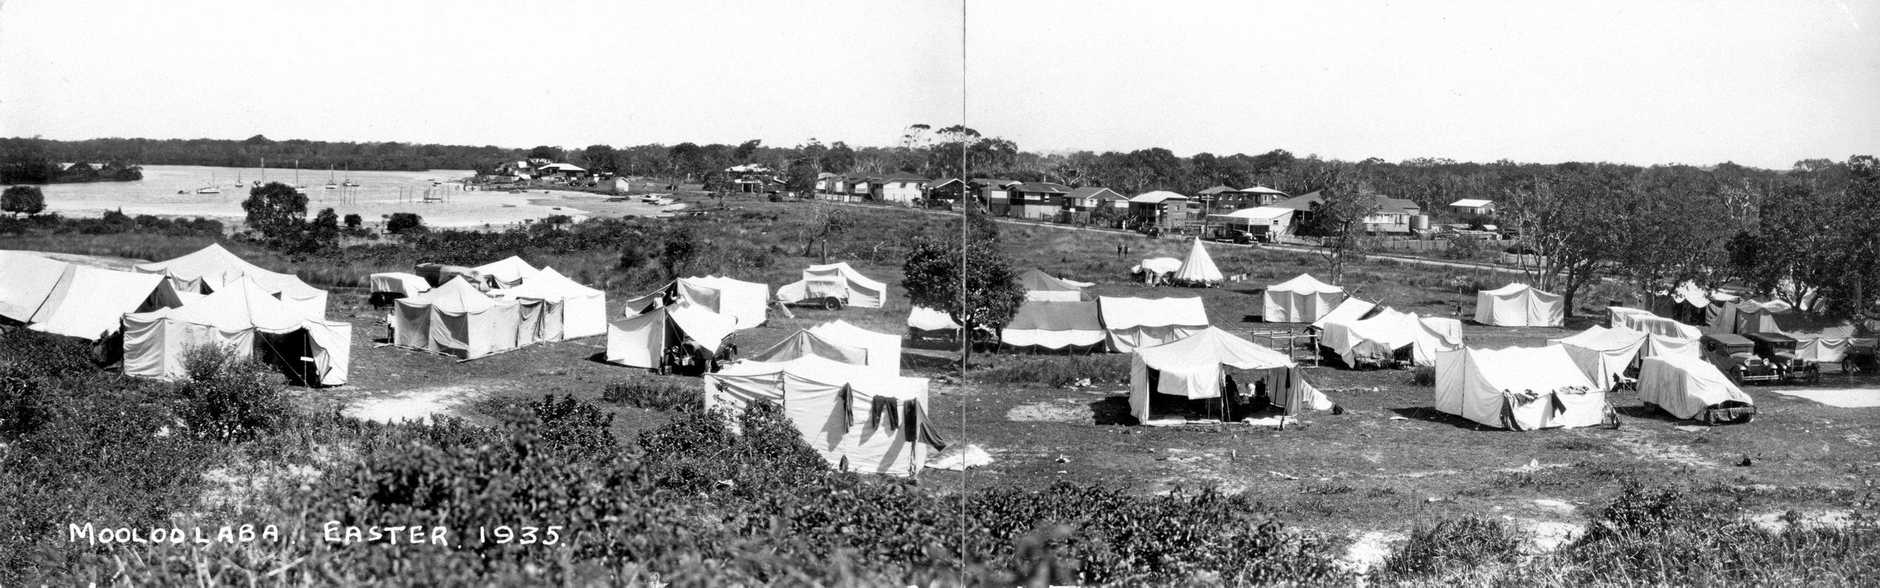 Camping on the Spit at Mooloolaba at Easter, 1935.